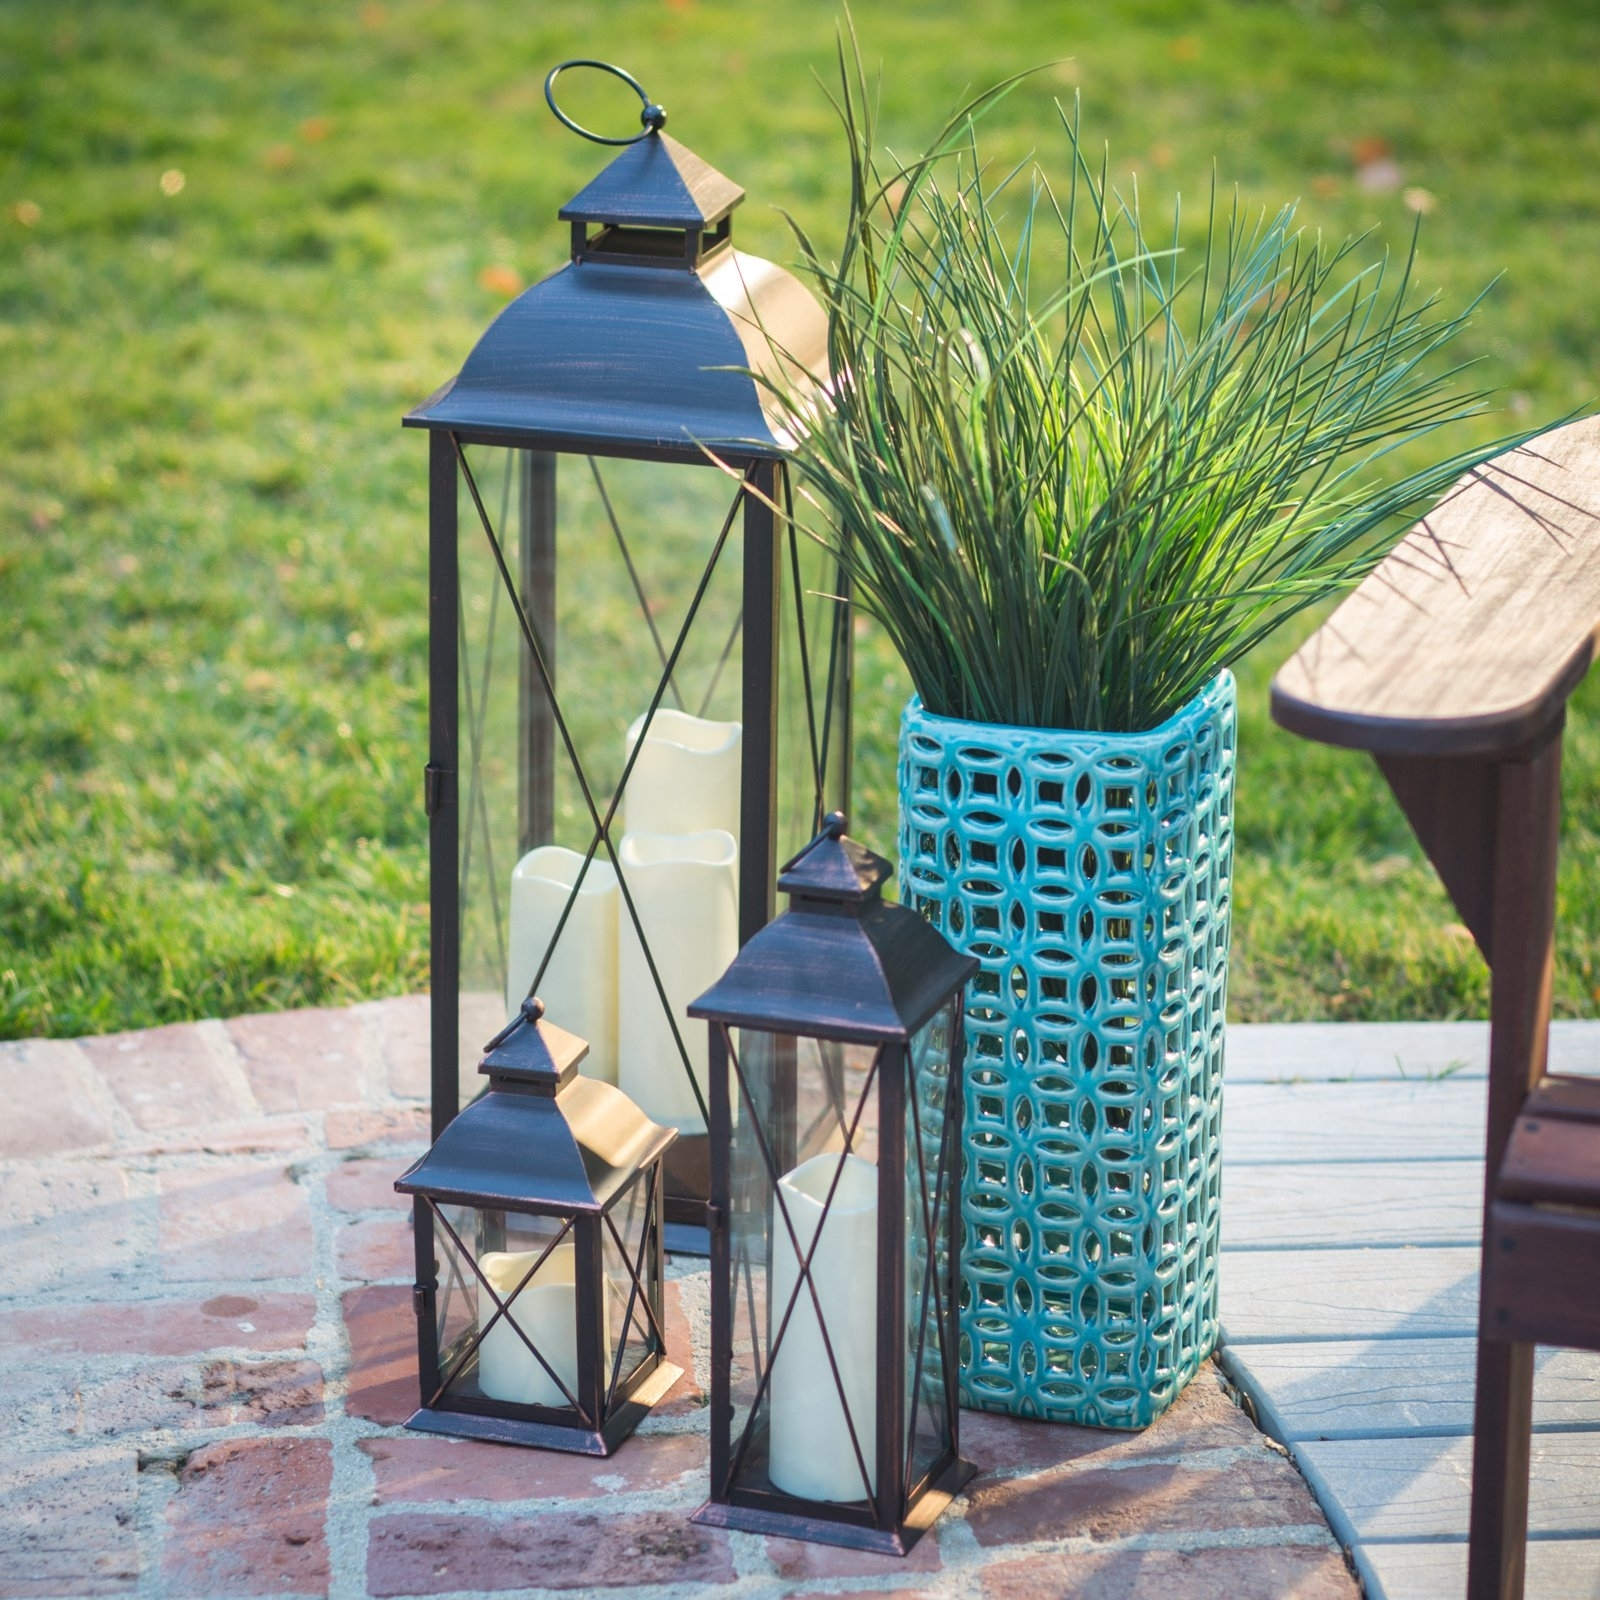 Smart Design Metal Lanterns With Led Candles – Set Of 3 – Walmart Intended For Set Of 3 Outdoor Lanterns (View 19 of 20)